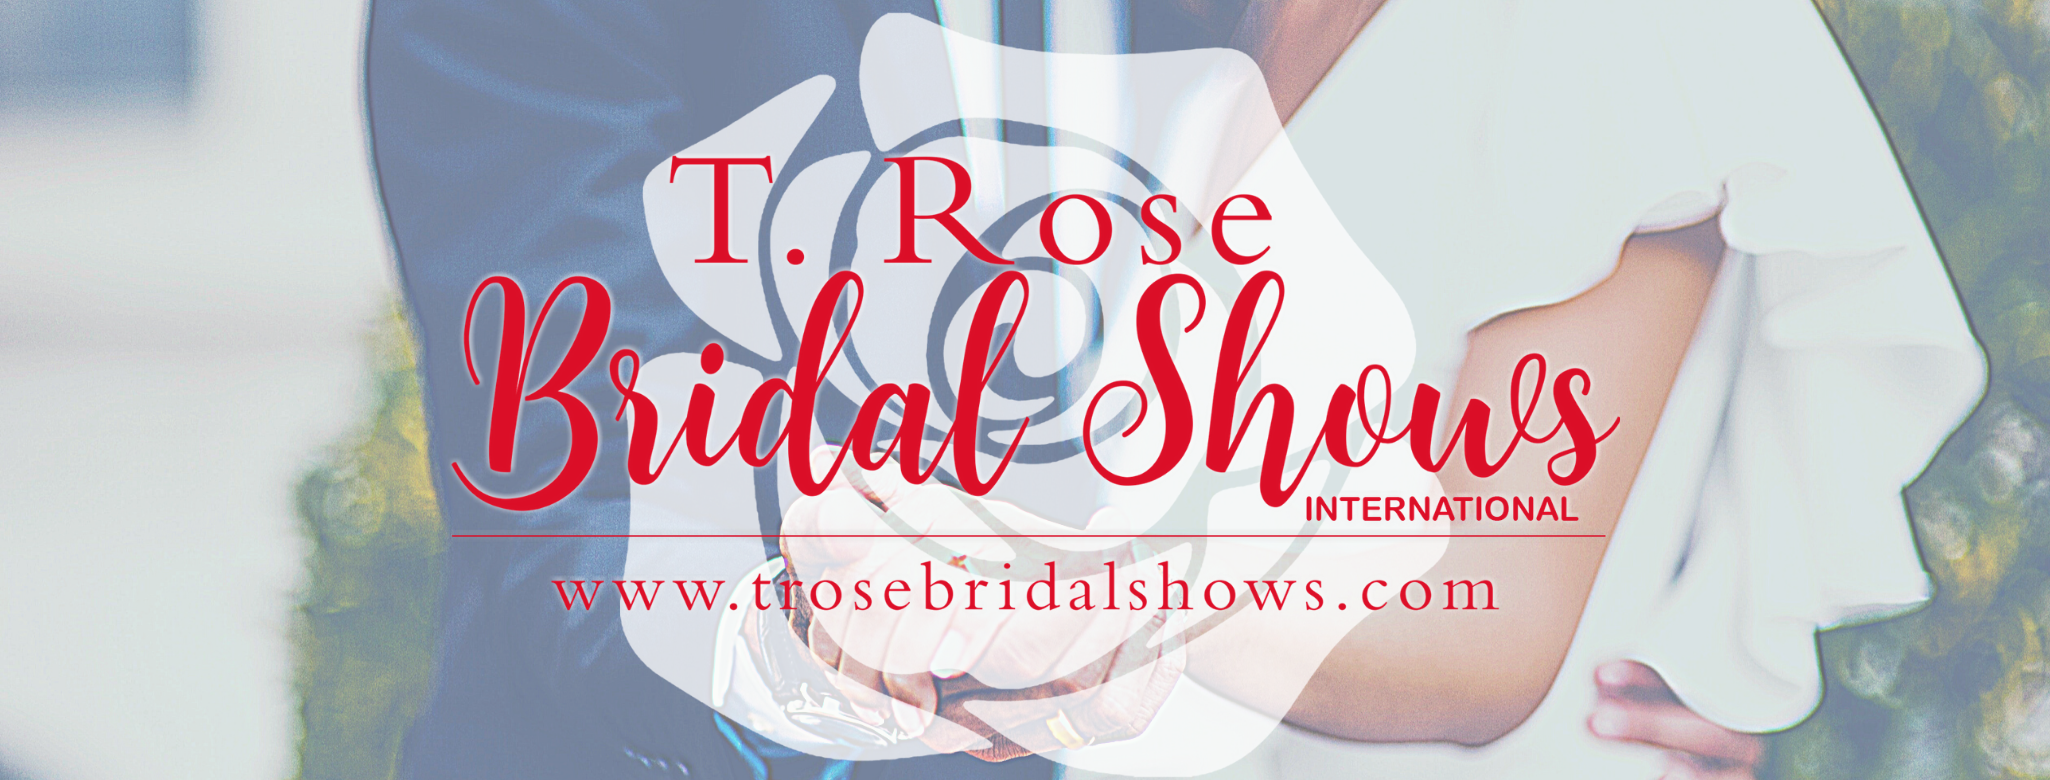 T. Rose International Website Header